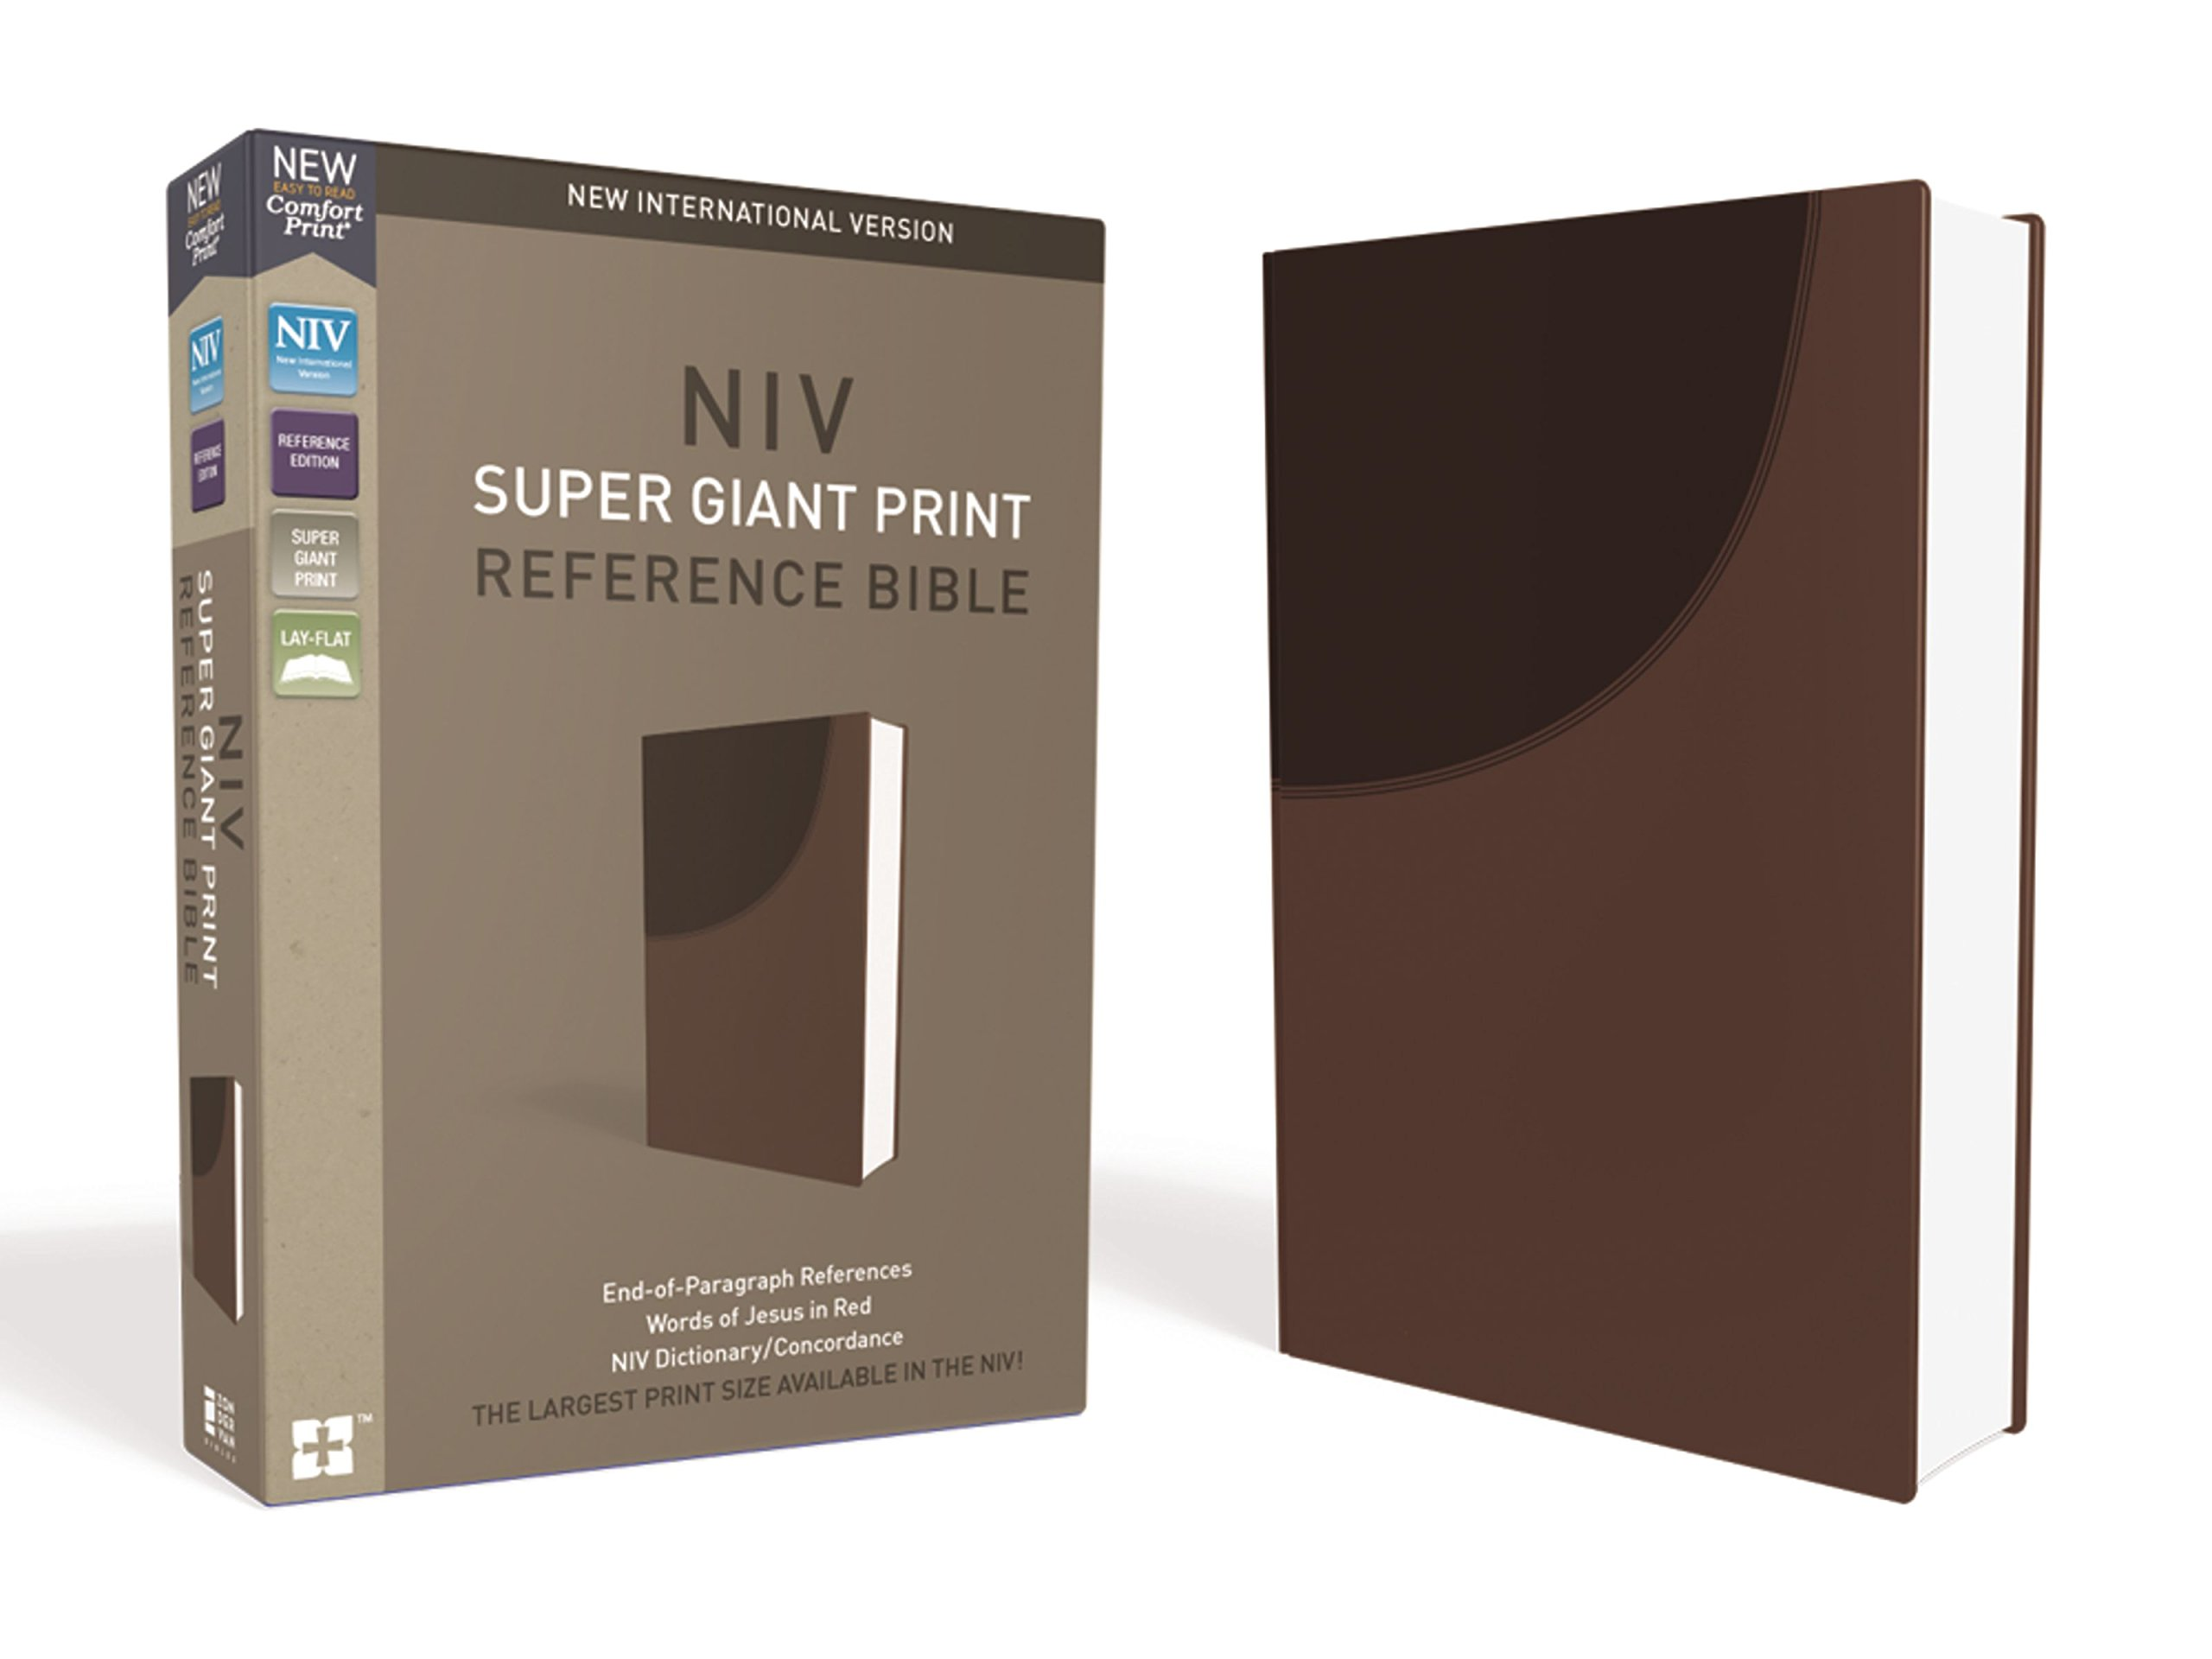 NIV, Super Giant Print Reference Bible, Leathersoft, Brown, Red Letter Edition, Comfort Print Imitation Leather – Large Print, Special Edition Zondervan 0310449375 Bibles TOPICAL / Christian Interest